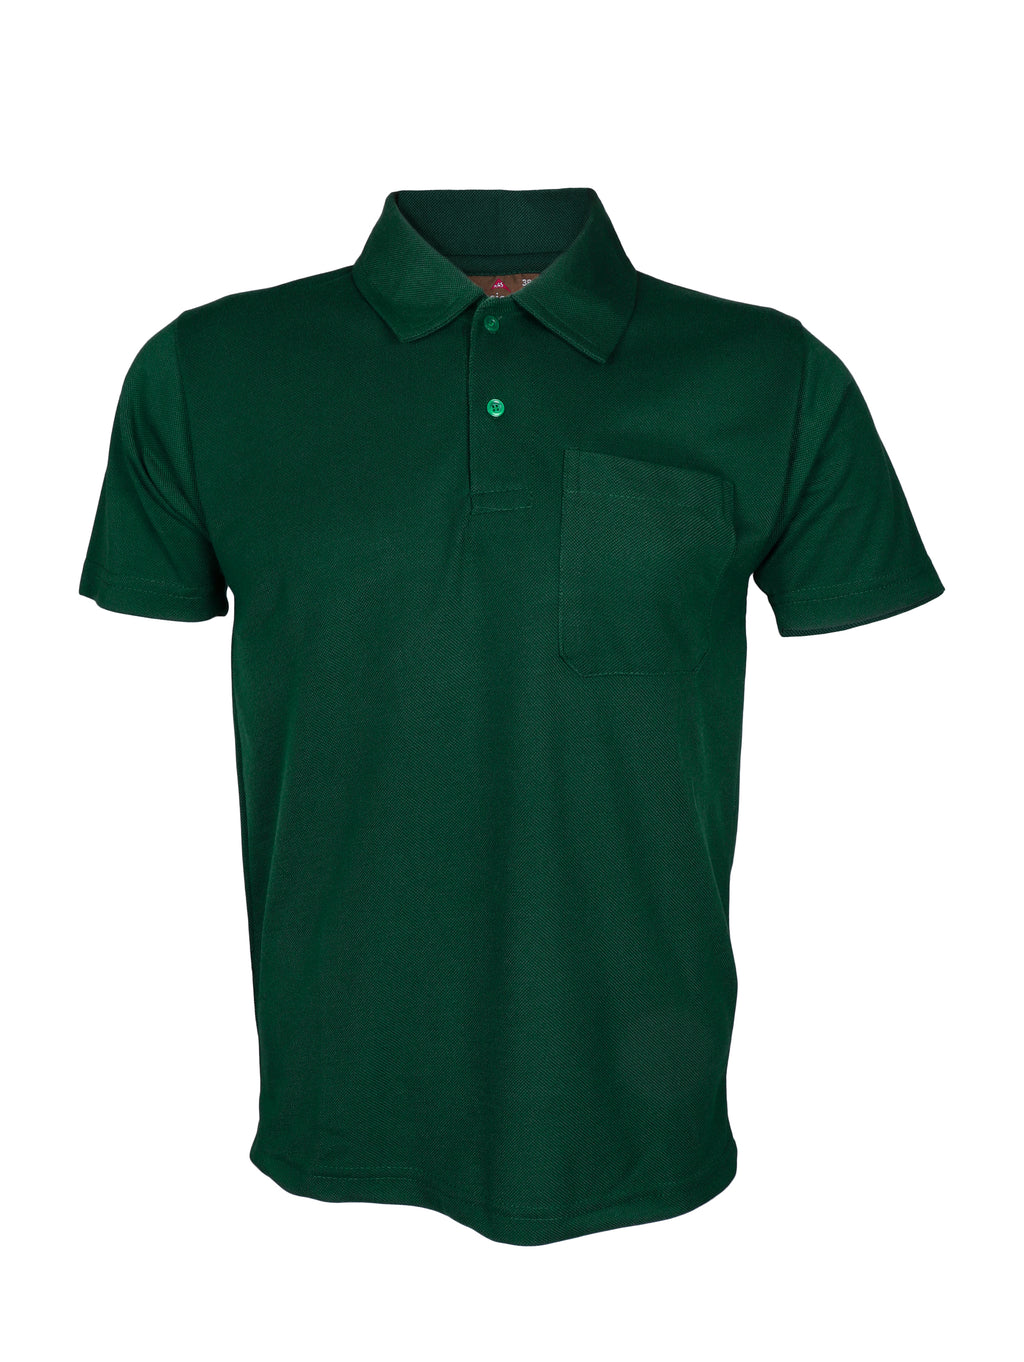 Green Half Sleeve Polo T-Shirt